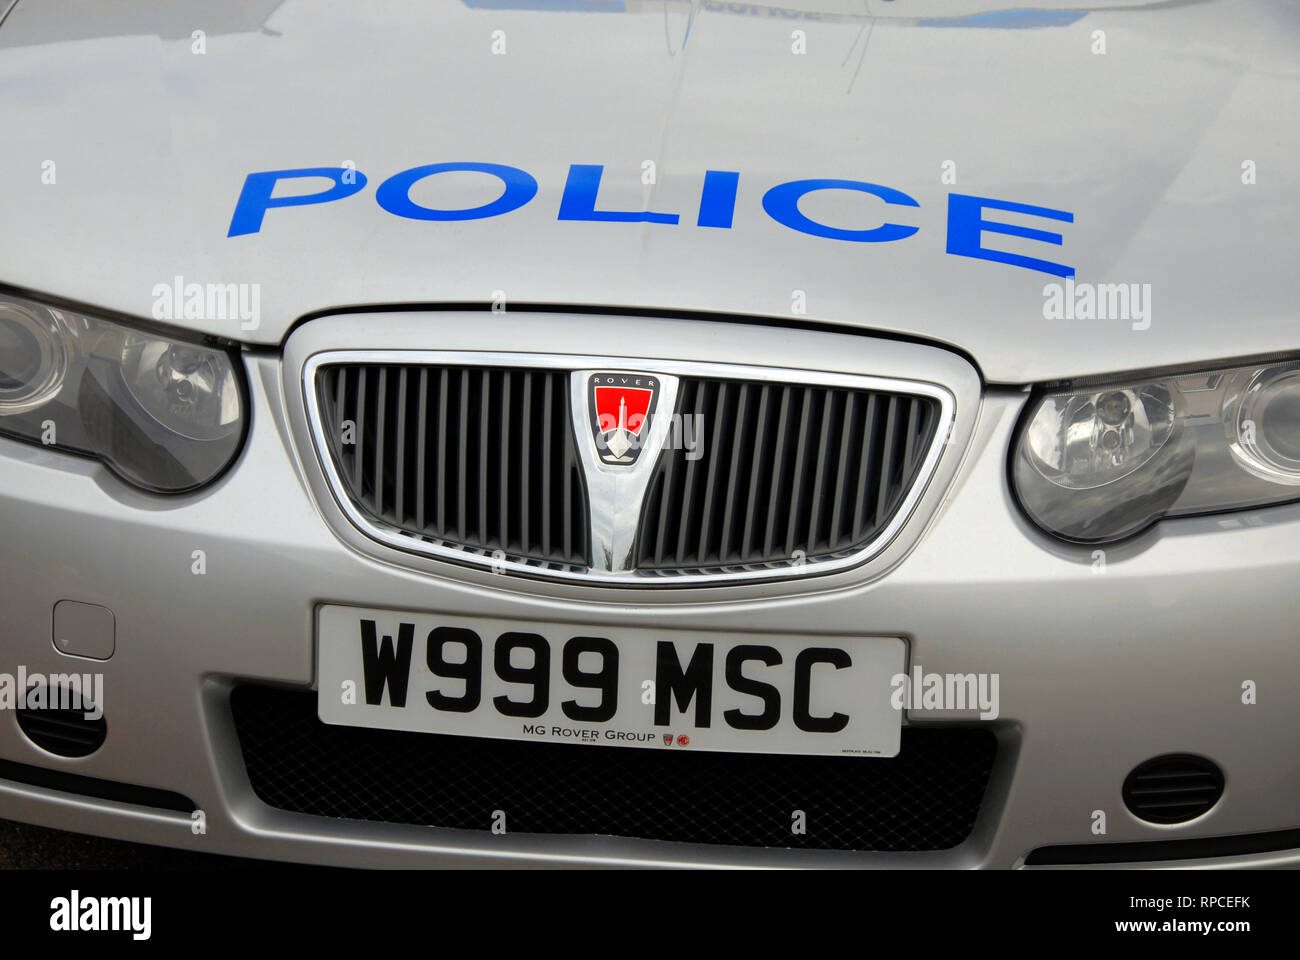 Police car with the number 999 in its registration plate - Stock Image